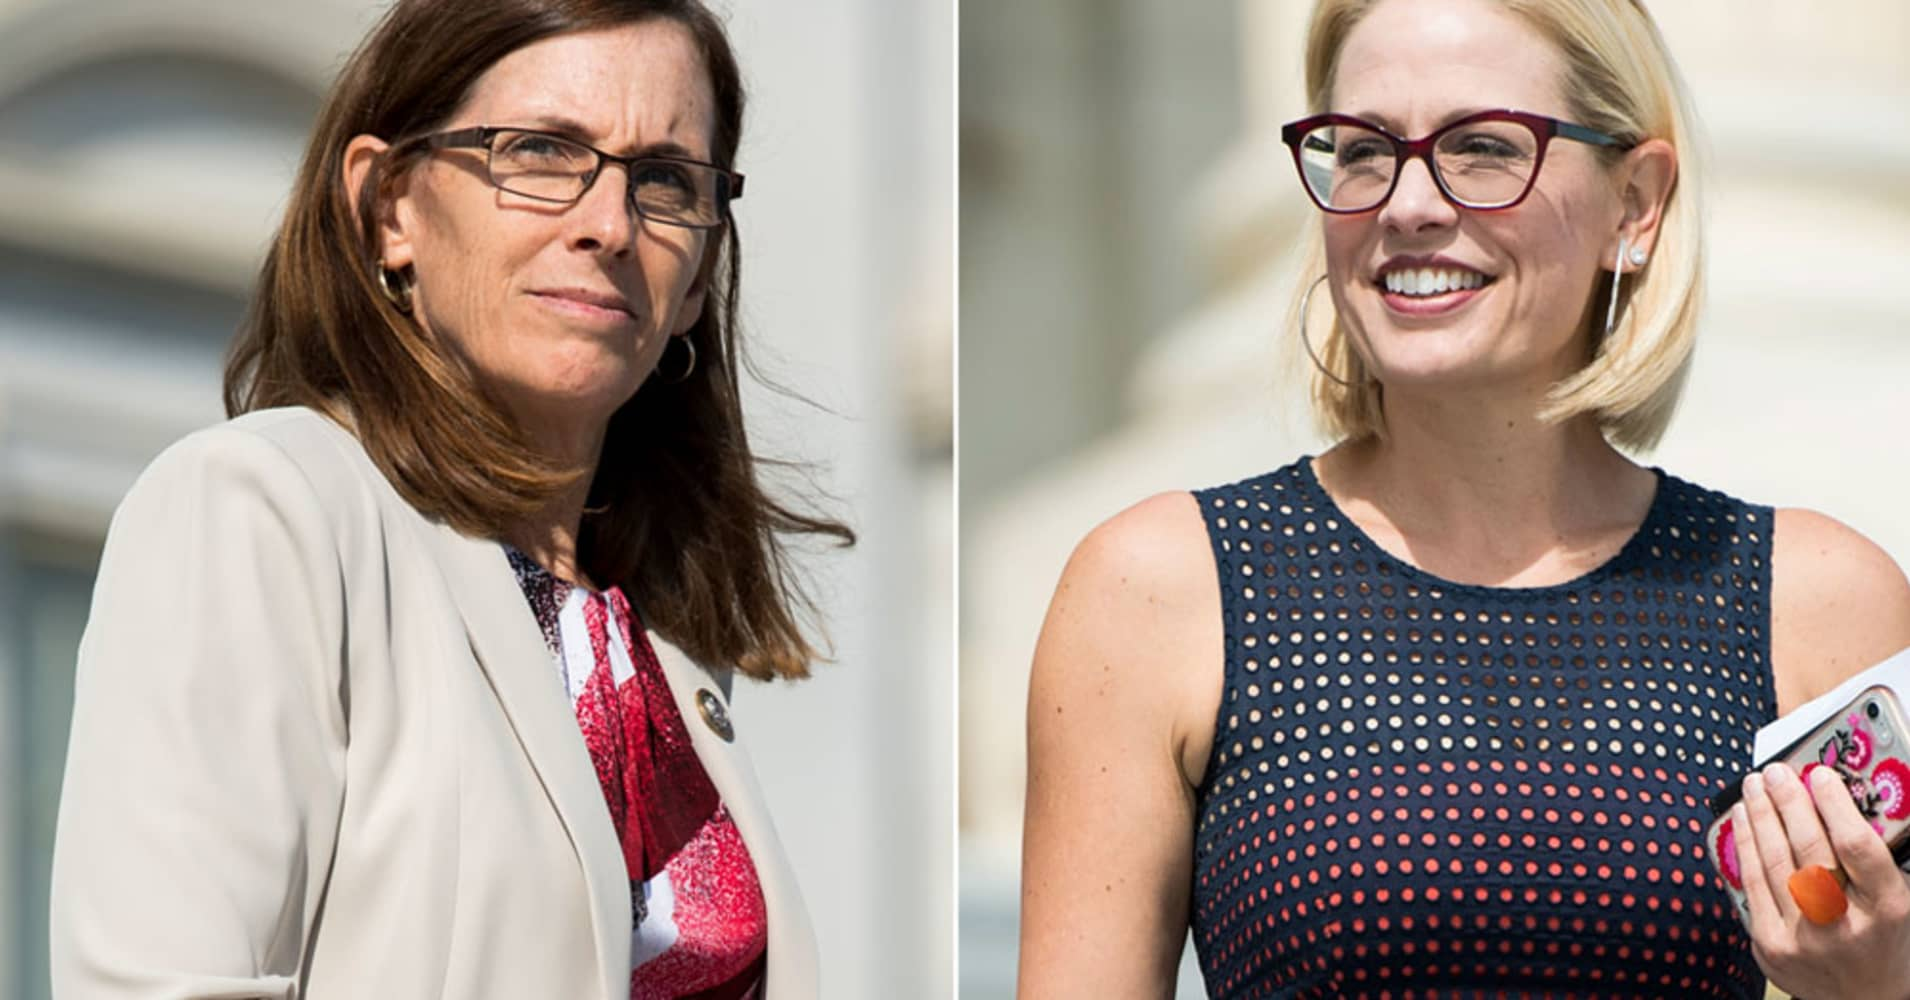 Democrat Sinema leads in Arizona Senate race that is still too close to call amid legal battle